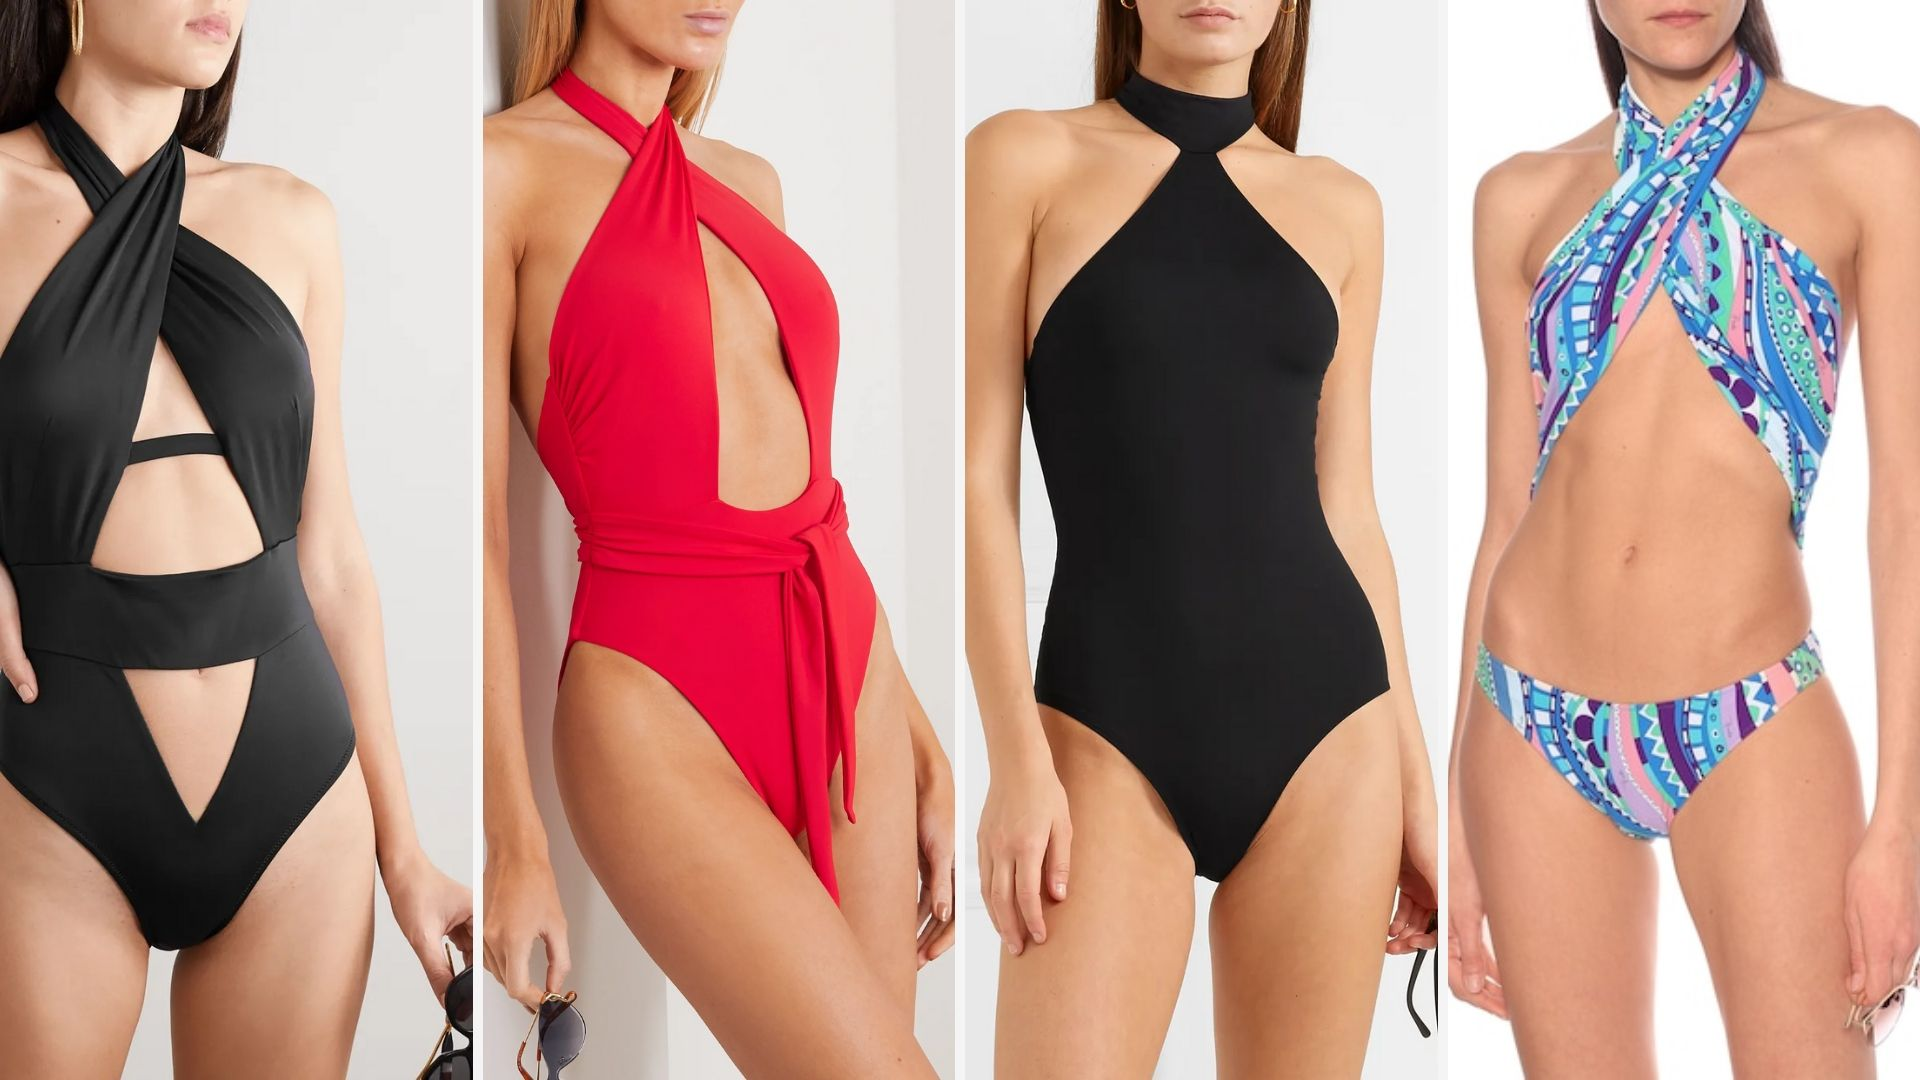 Swimsuit Showdown: Which is Your Favorite?